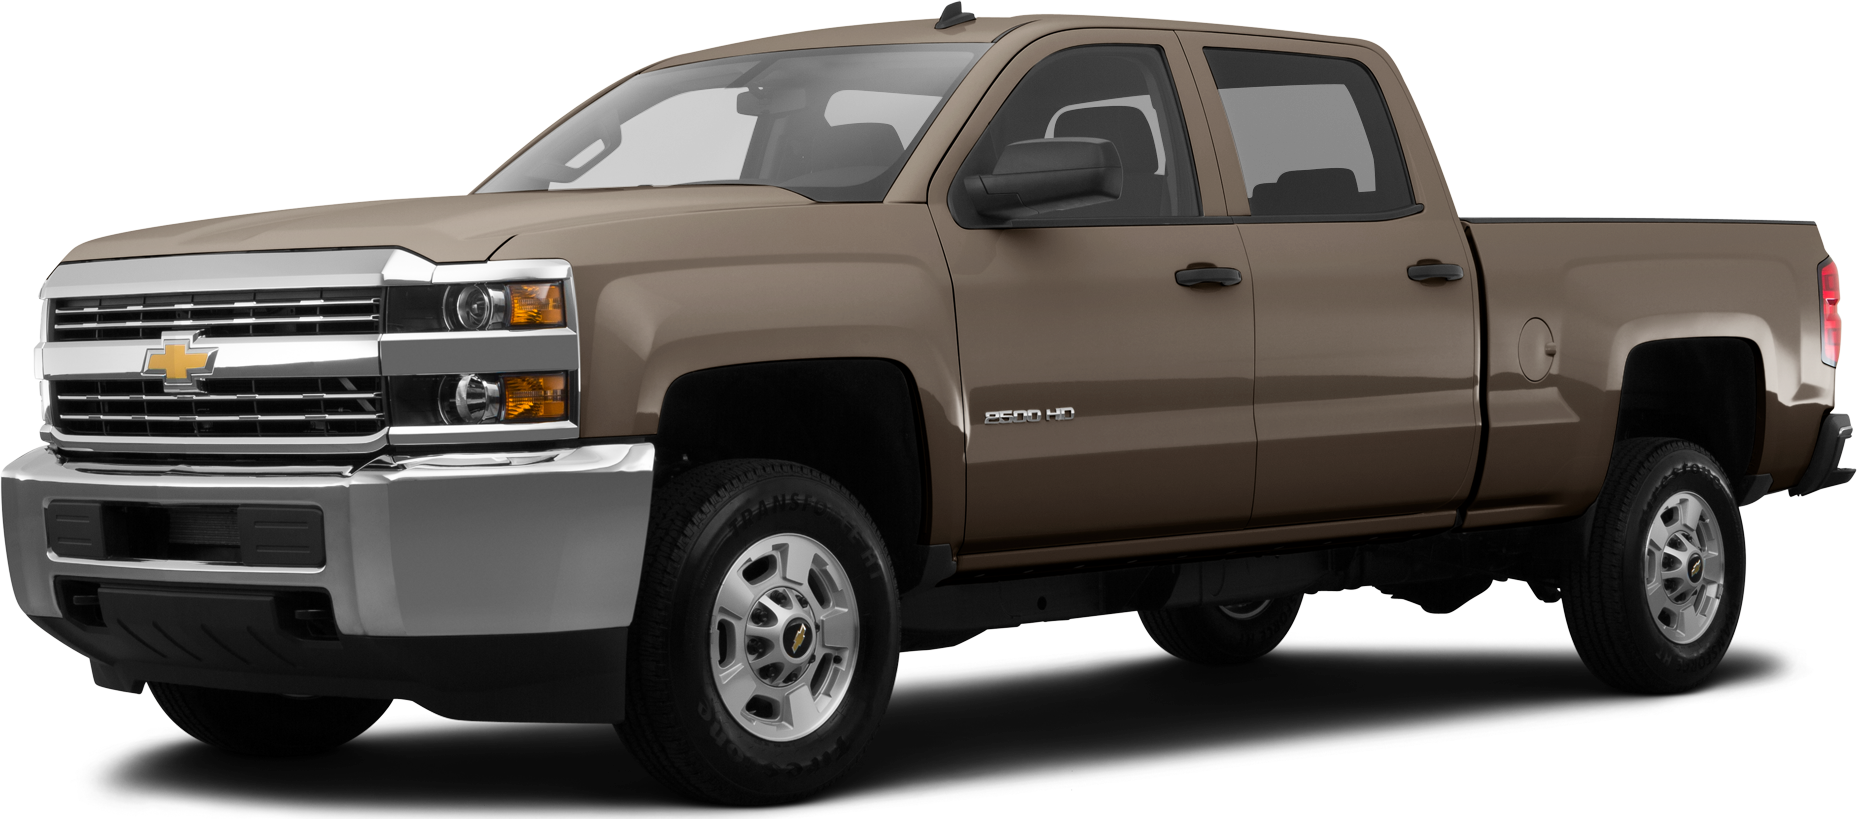 2015 Chevrolet Silverado 1500 Crew Cab | Pricing, Ratings